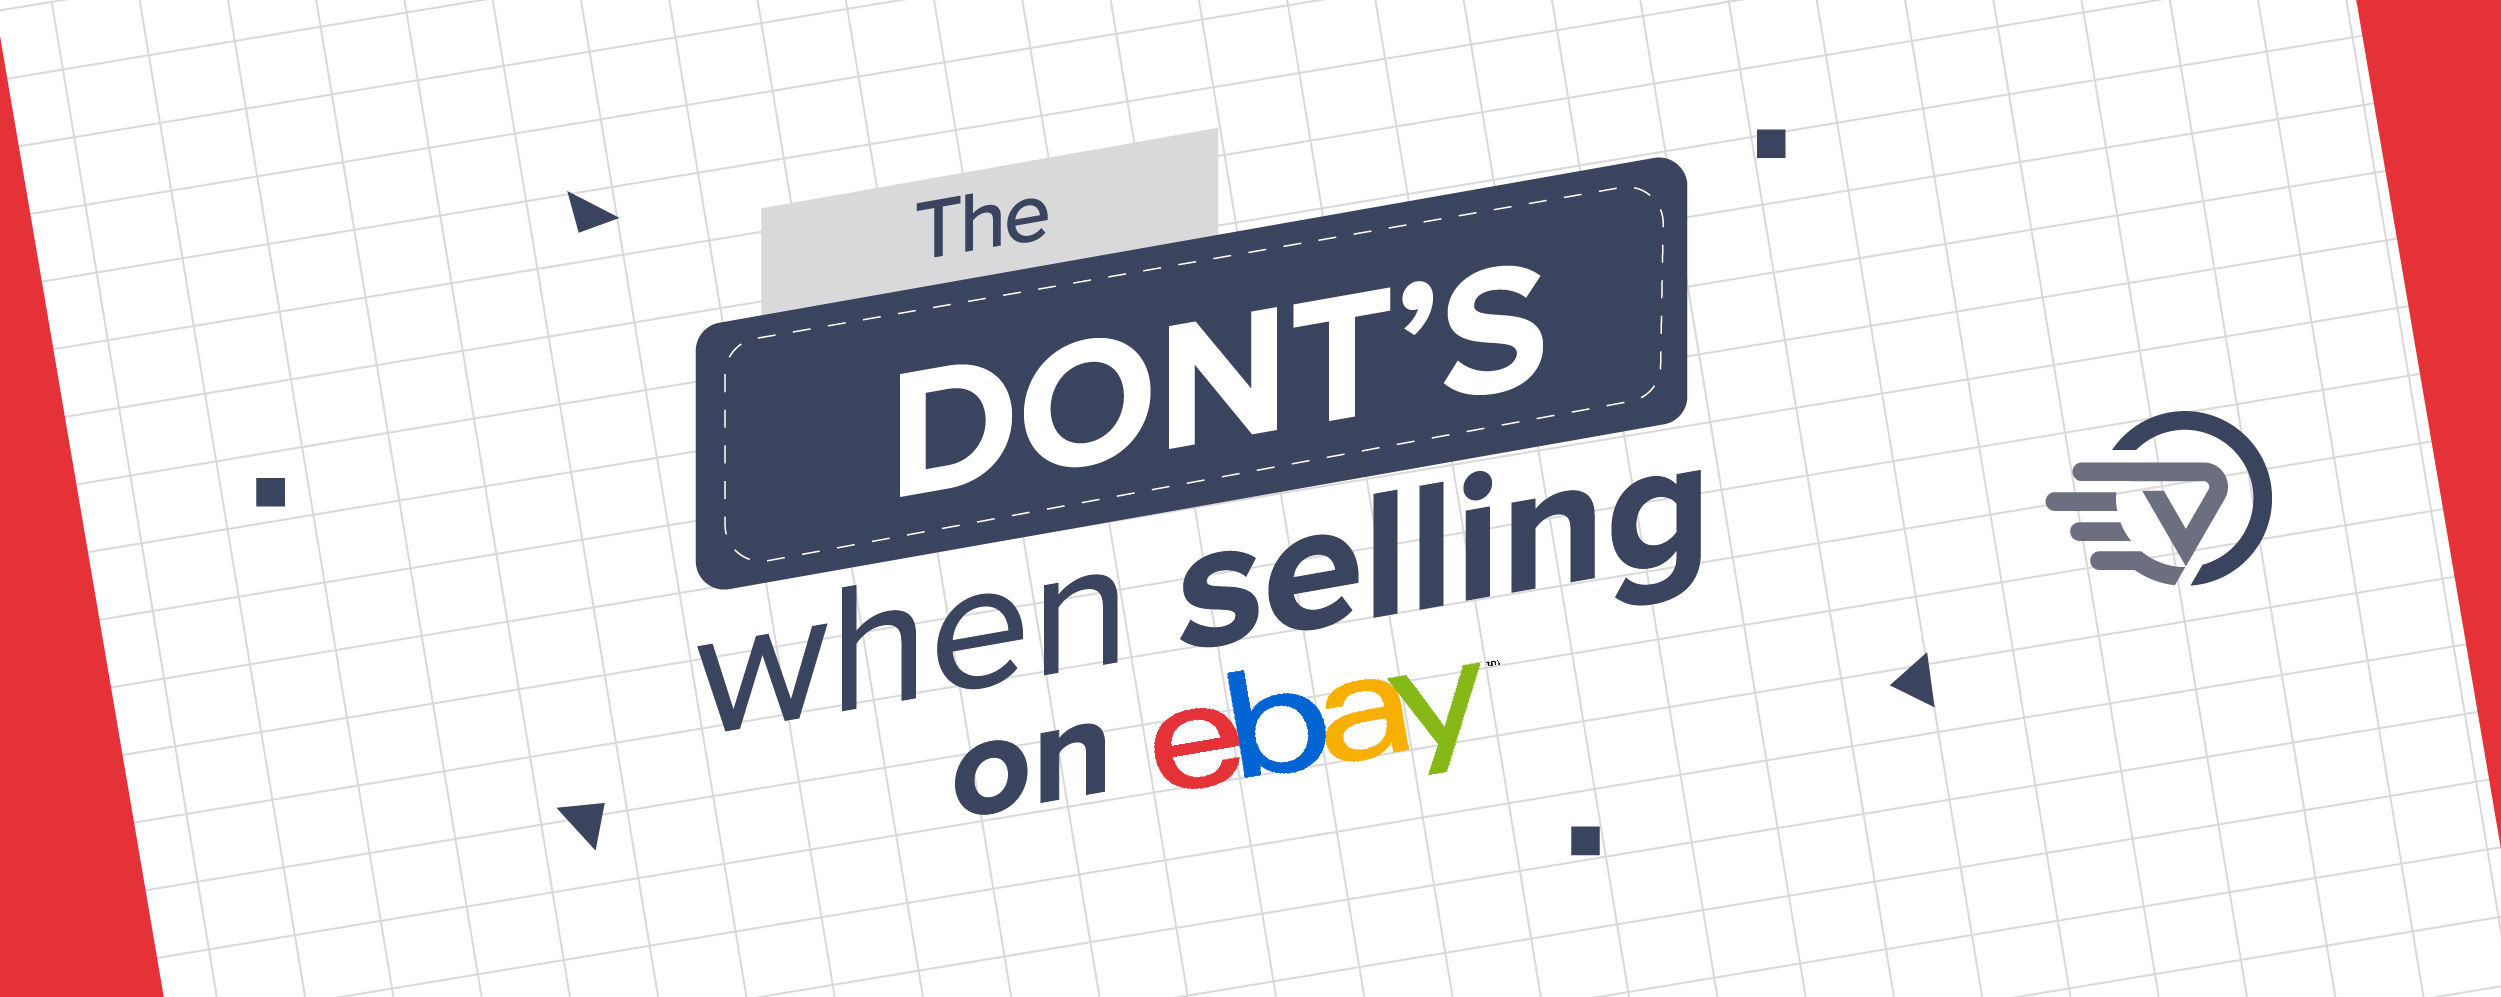 The DON'TS When Selling On EBAY, To Improve Your Sales